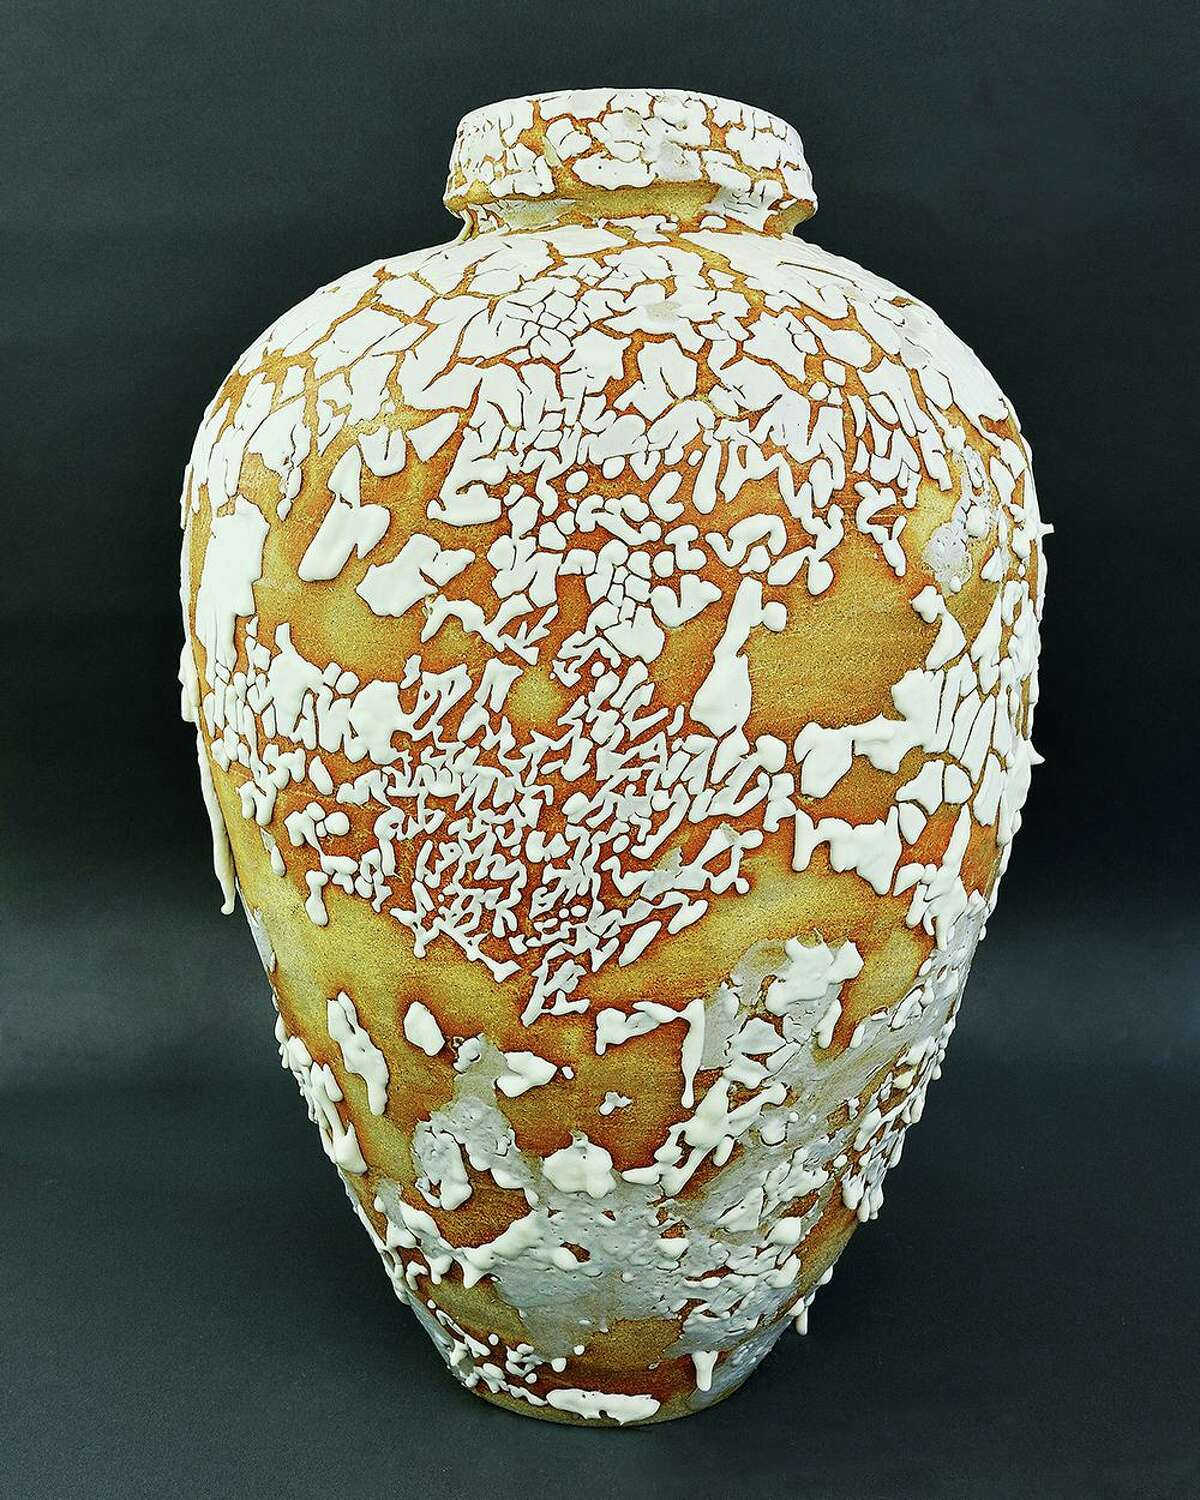 A 22-inch vessel with a Shino Crawl glaze on display at Savage Studio in Danbury, Conn., which is holding one last show at 93 Mill Plain Road before closing at the end of 2019. (Photo courtesy Savage Studio)